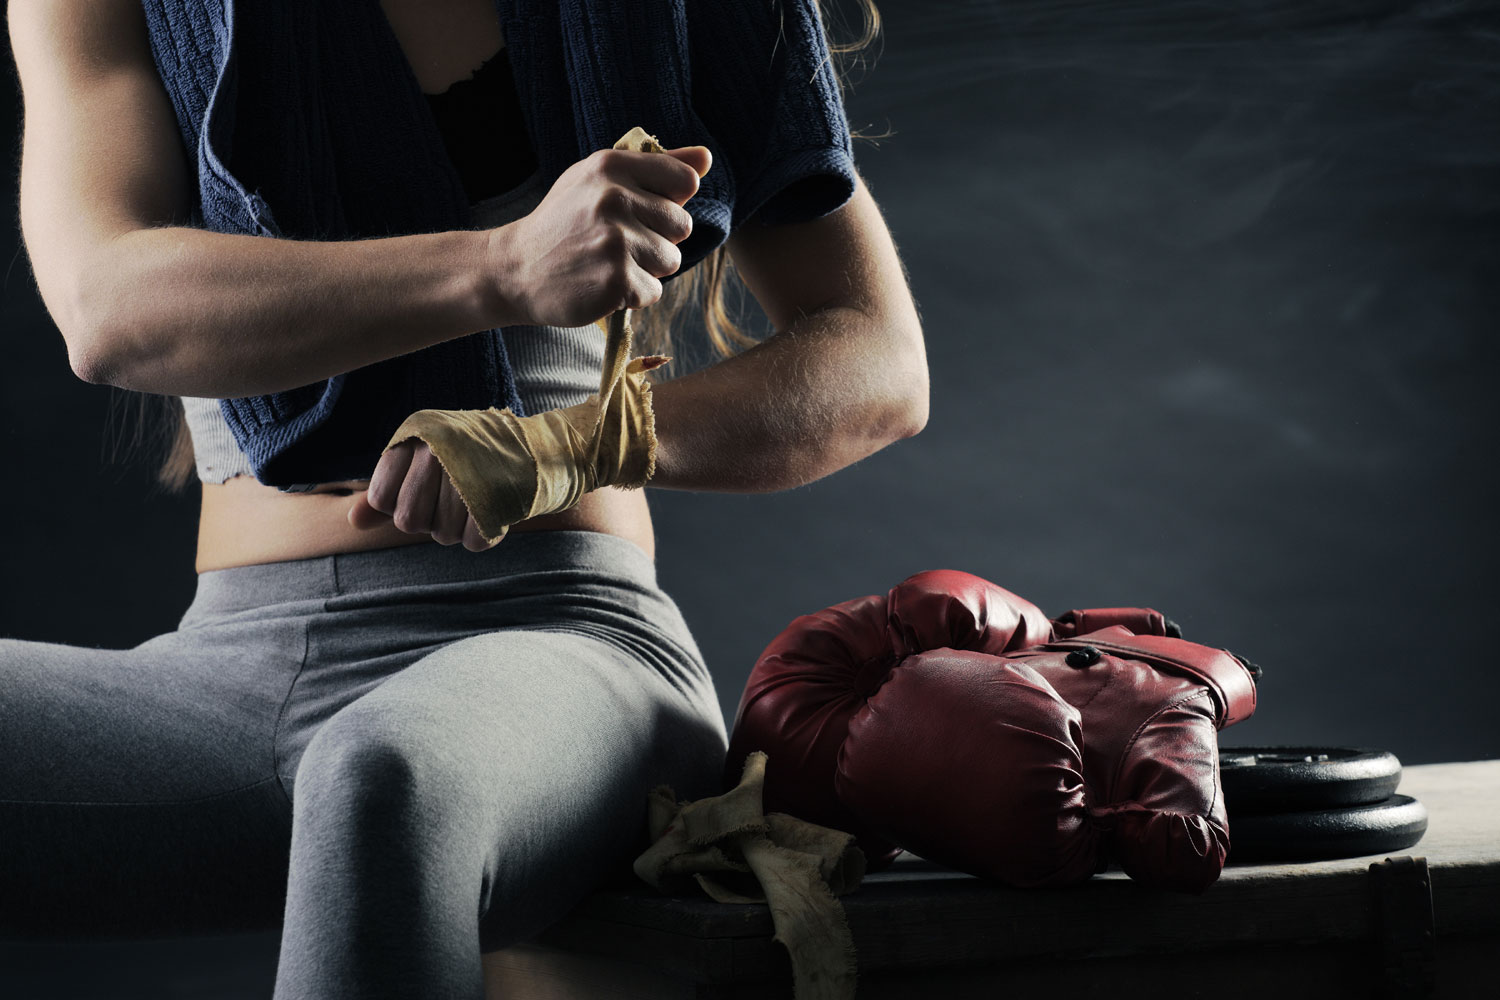 In London, women's boxing made its debut as an Olympic event.